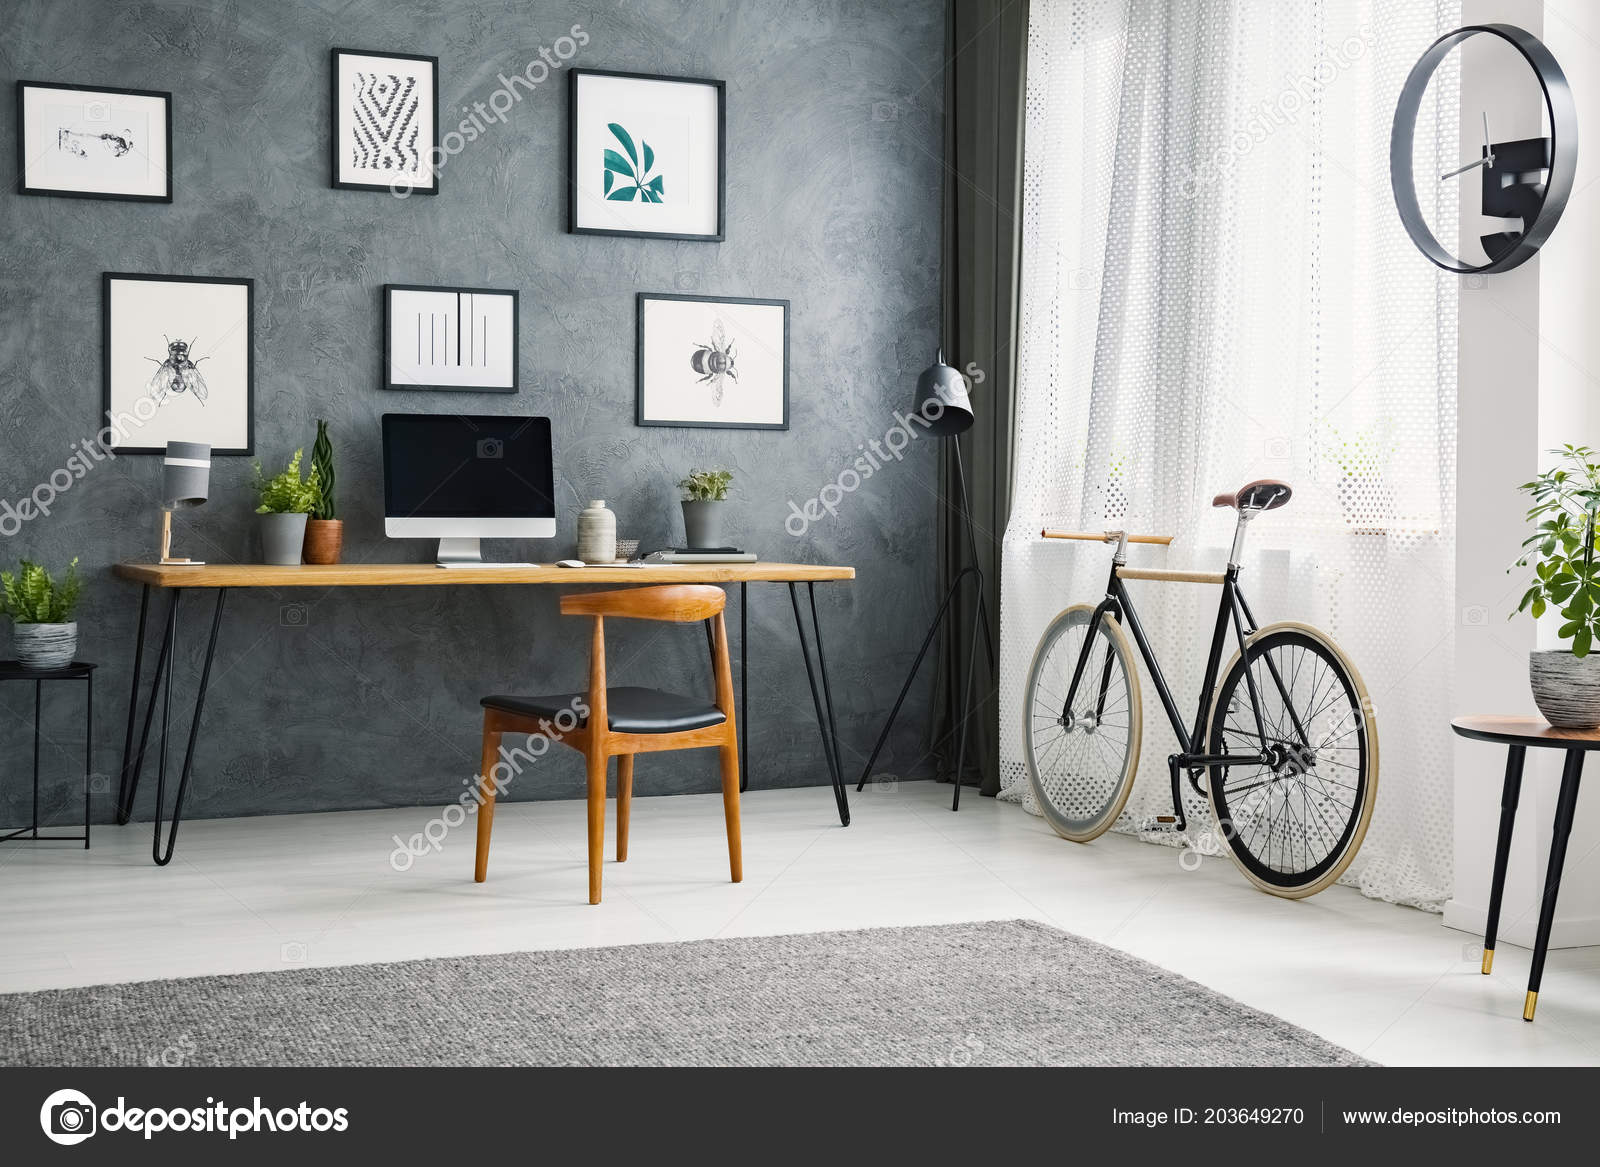 newest 1d52f 7e5dc Bicycle Next Wooden Chair Desk Grey Home Office Interior ...